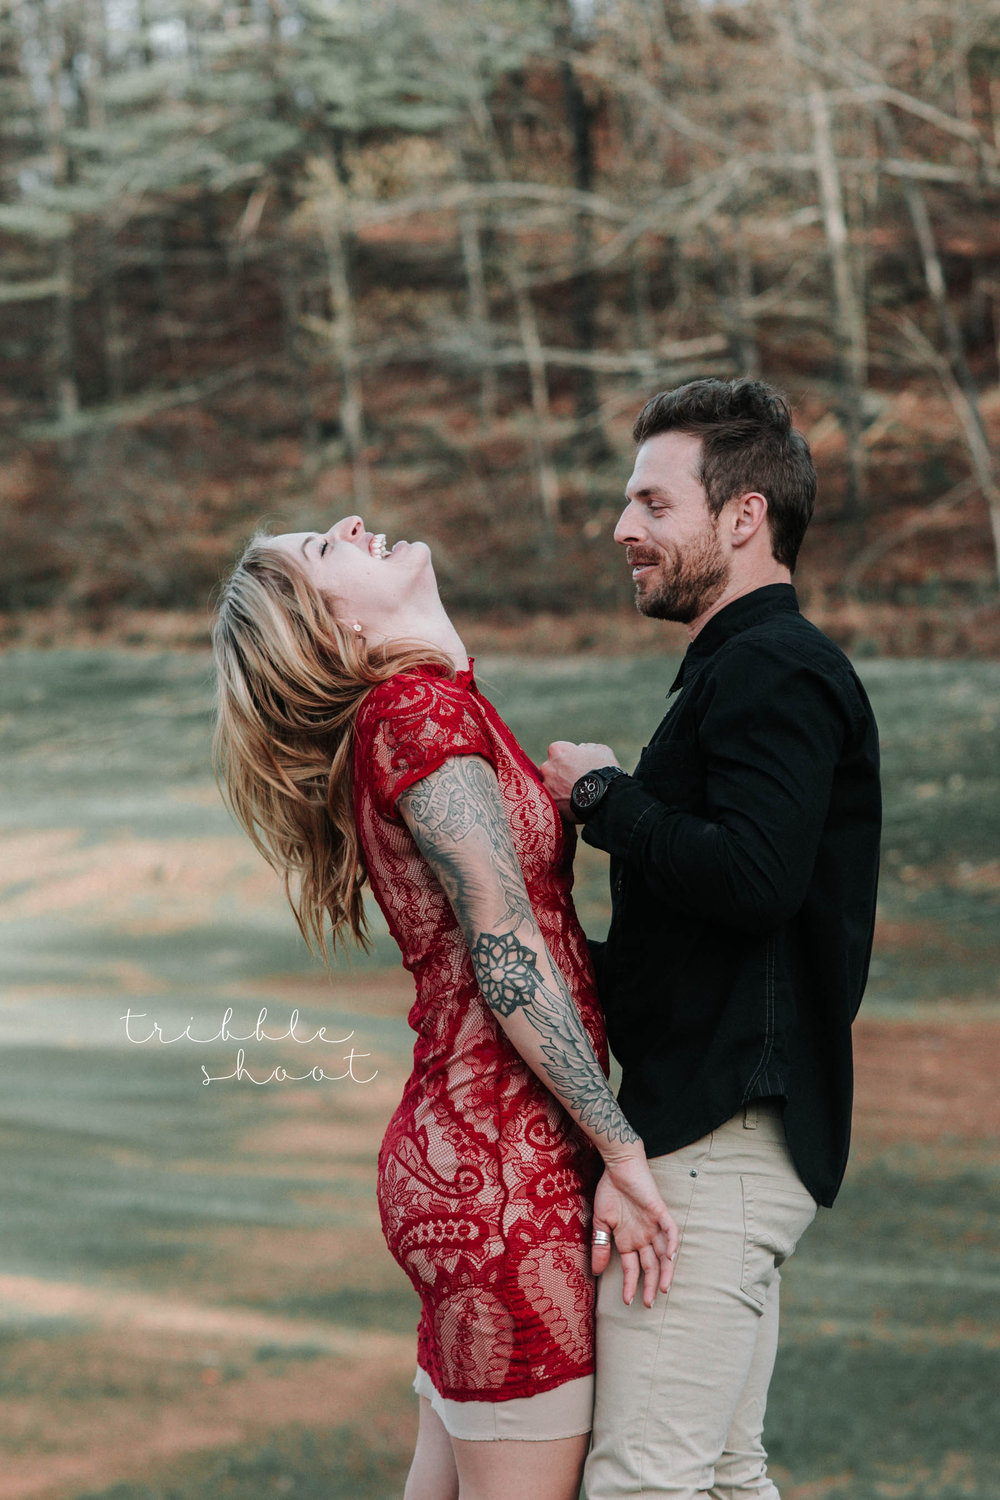 places-to-take-engagement-photos-in-greenville-sc.jpg